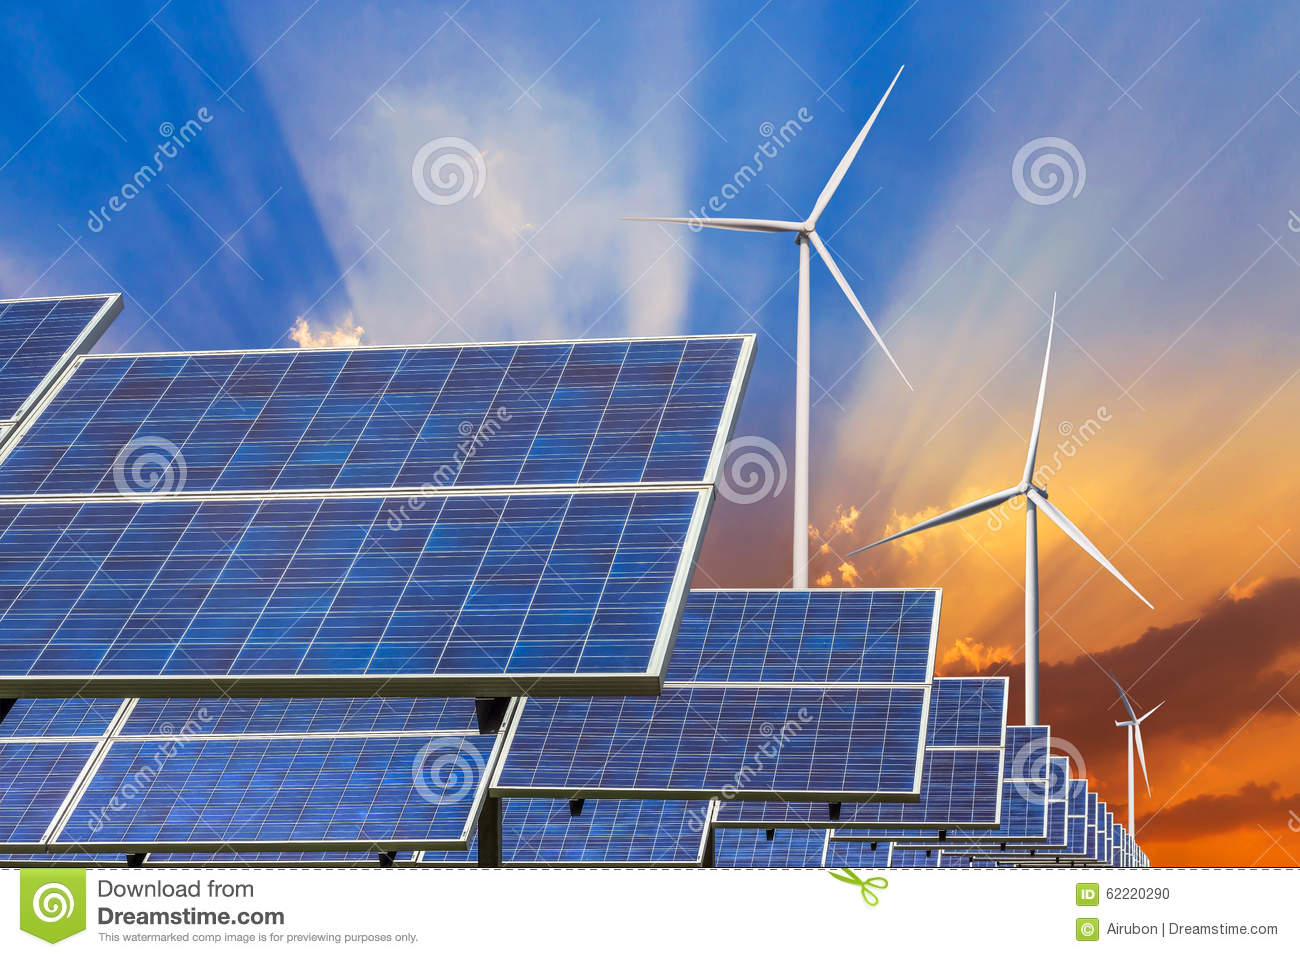 solar energy and wind energy Cleantechnica is the #1 cleantech-focused news & analysis website in the us & the world, focusing primarily on electric cars, solar energy, wind energy, & energy storage.